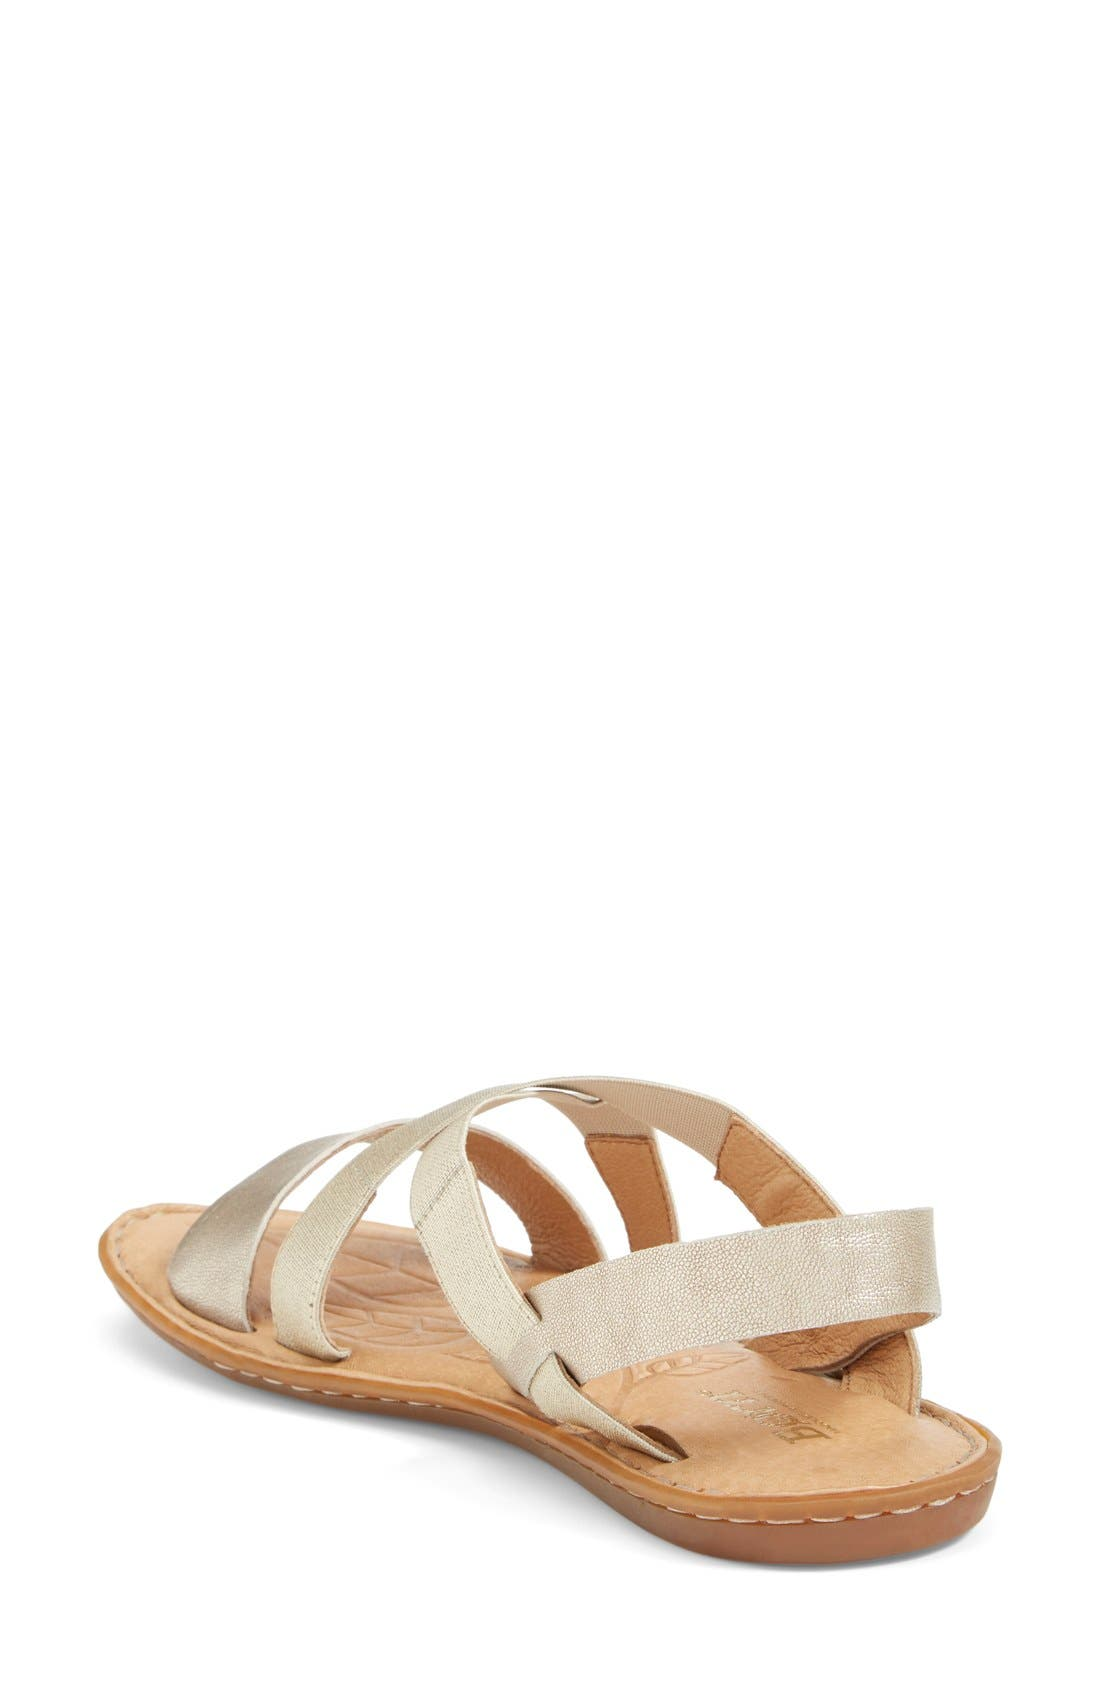 Alternate Image 2  - Børn 'Icelyn' Flat Sandal (Women)